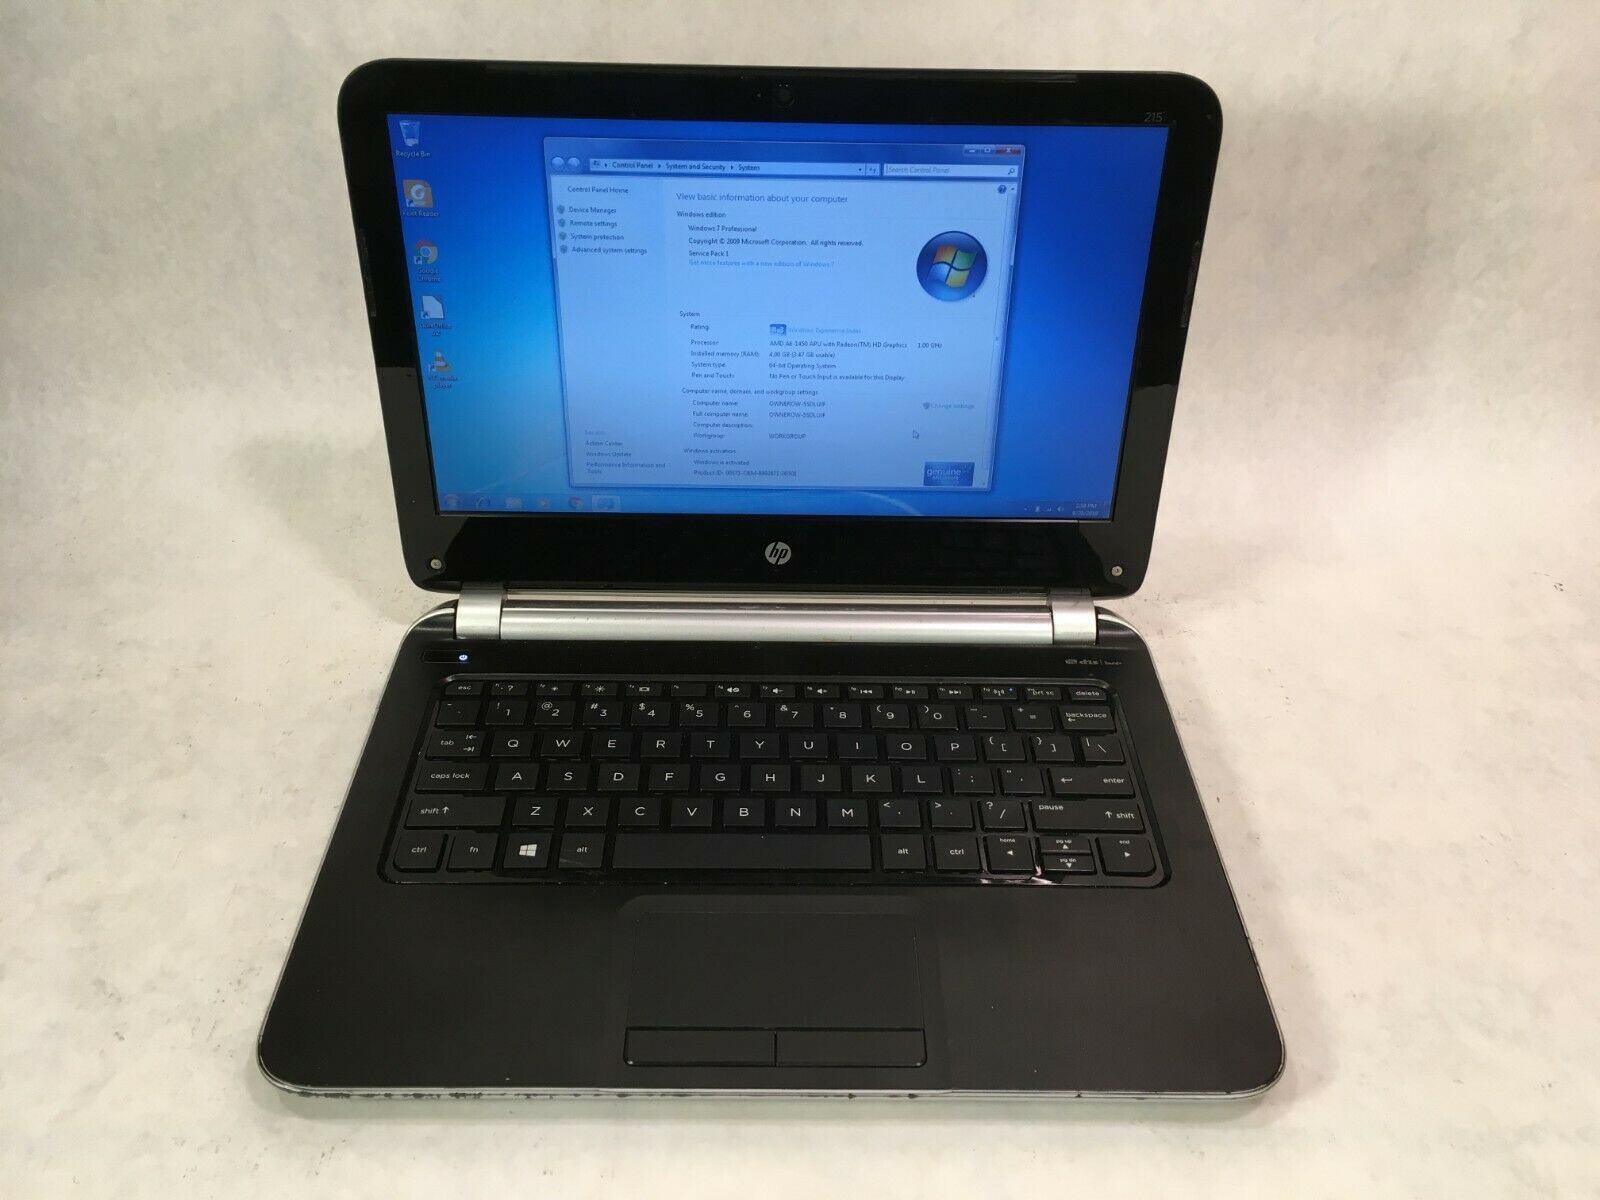 "Laptop Windows - HP 215 G1 11.6"" Laptop AMD 1.0GHz / 4GB RAM / 320GB HDD / Windows 7"